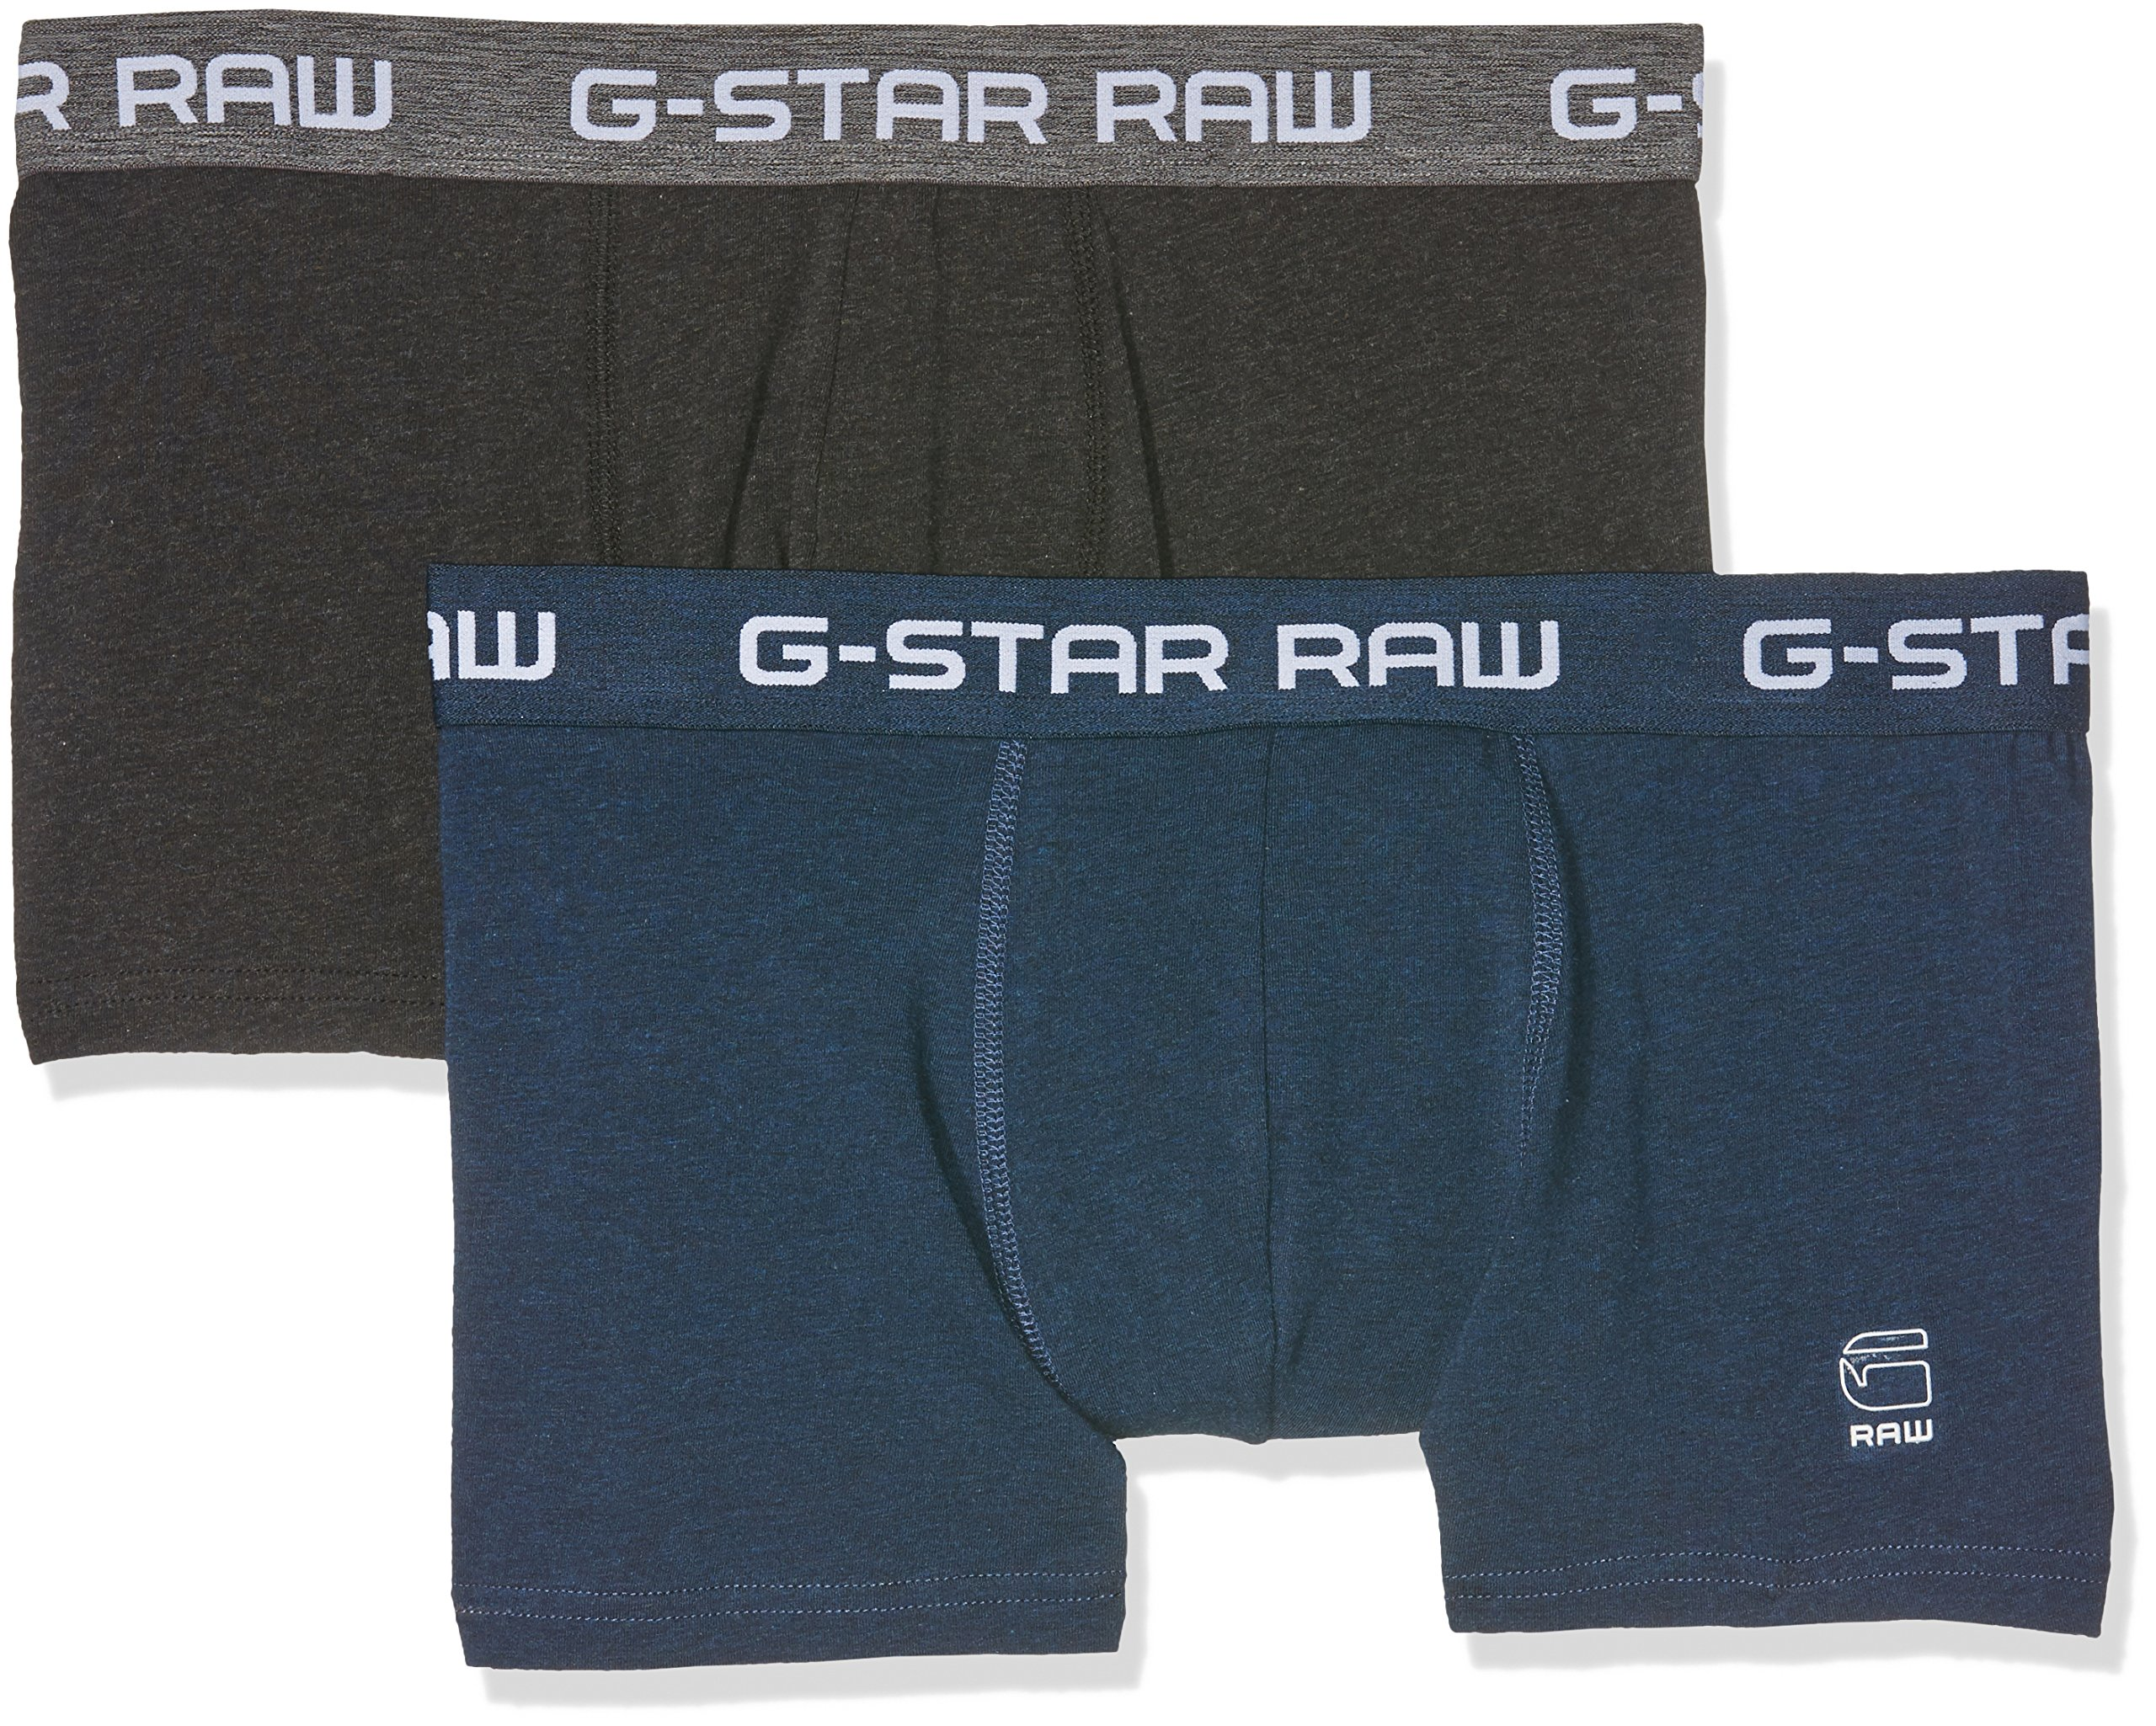 G-STAR RAW Classic Trunk 2 Pack, Boxer Uomo, Nero (Black Htr/Mazarine Blue H), XX-Large (pacco da 2